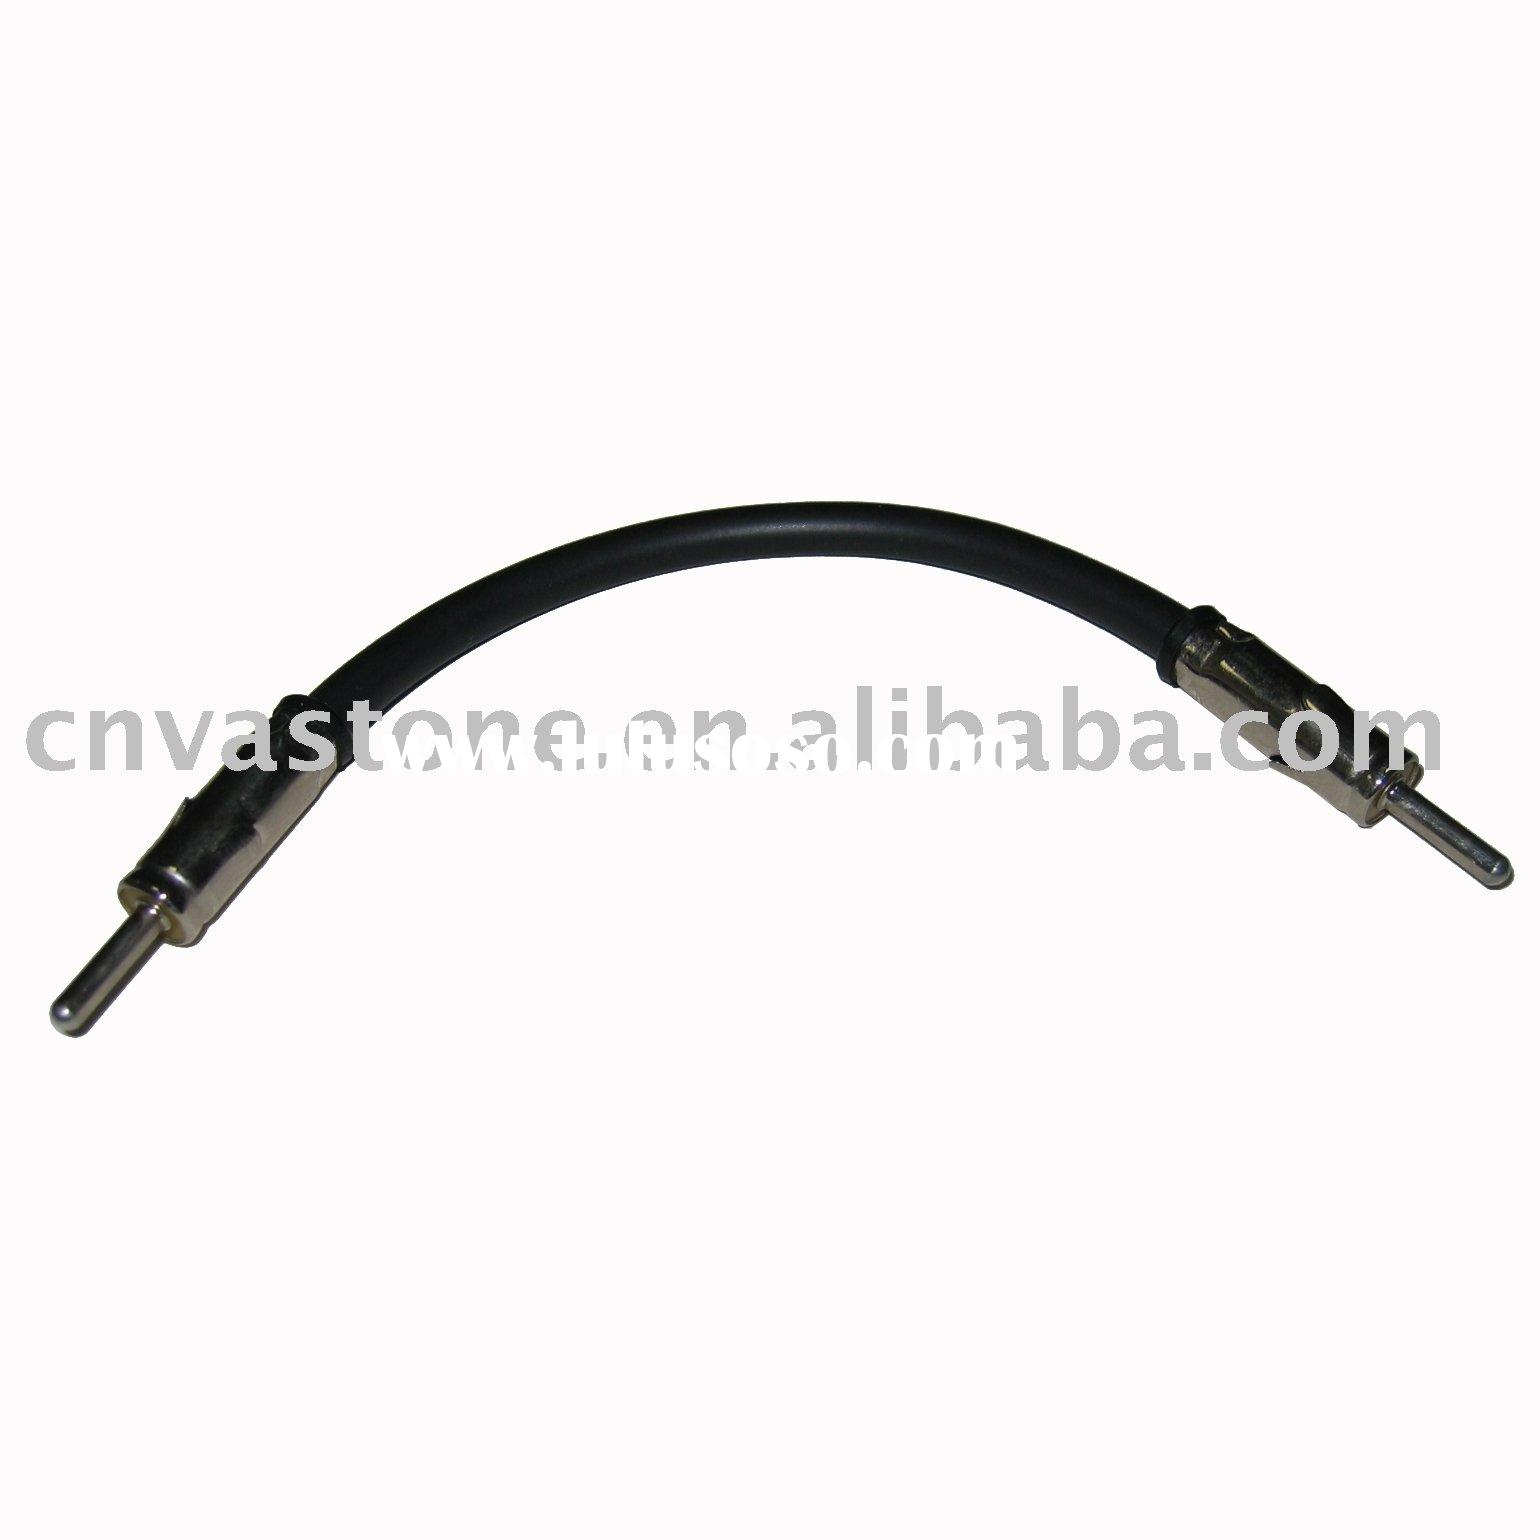 Car Antenna Cable--Antenna Adapter--SJ-MM